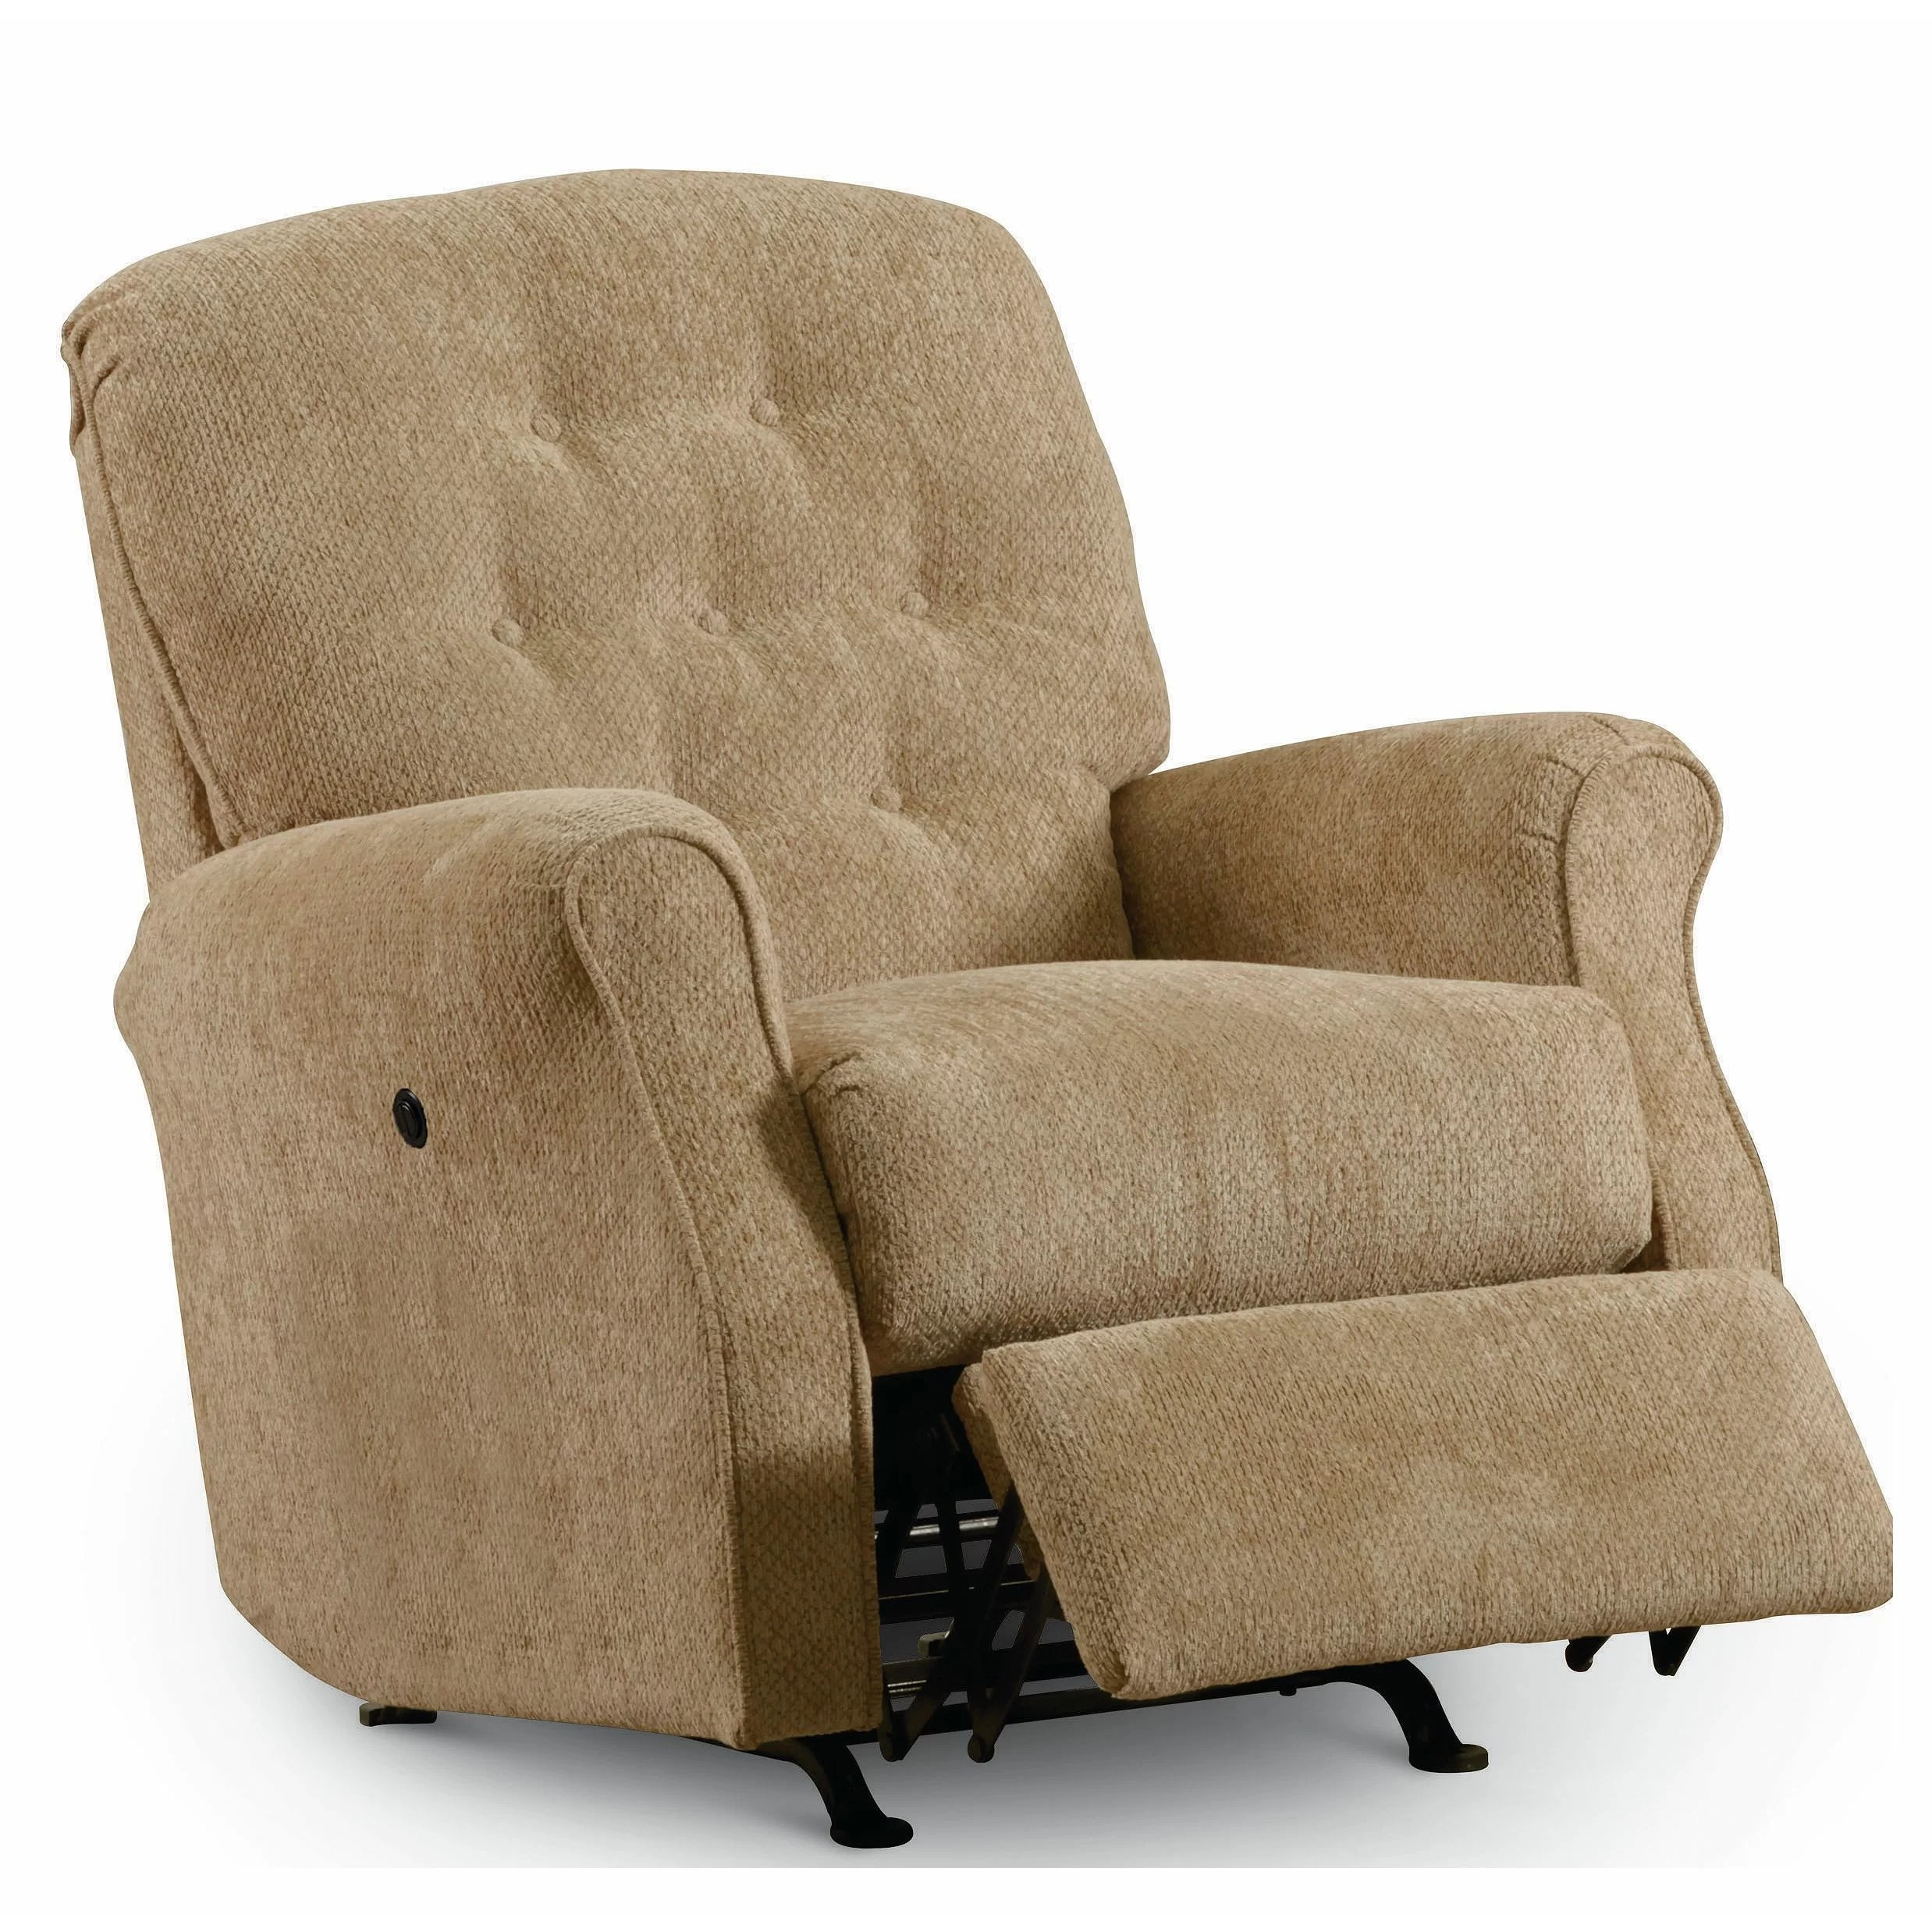 aunt priscilla has a rocking chair portable with canopy lane furniture recliner and reviews wayfair